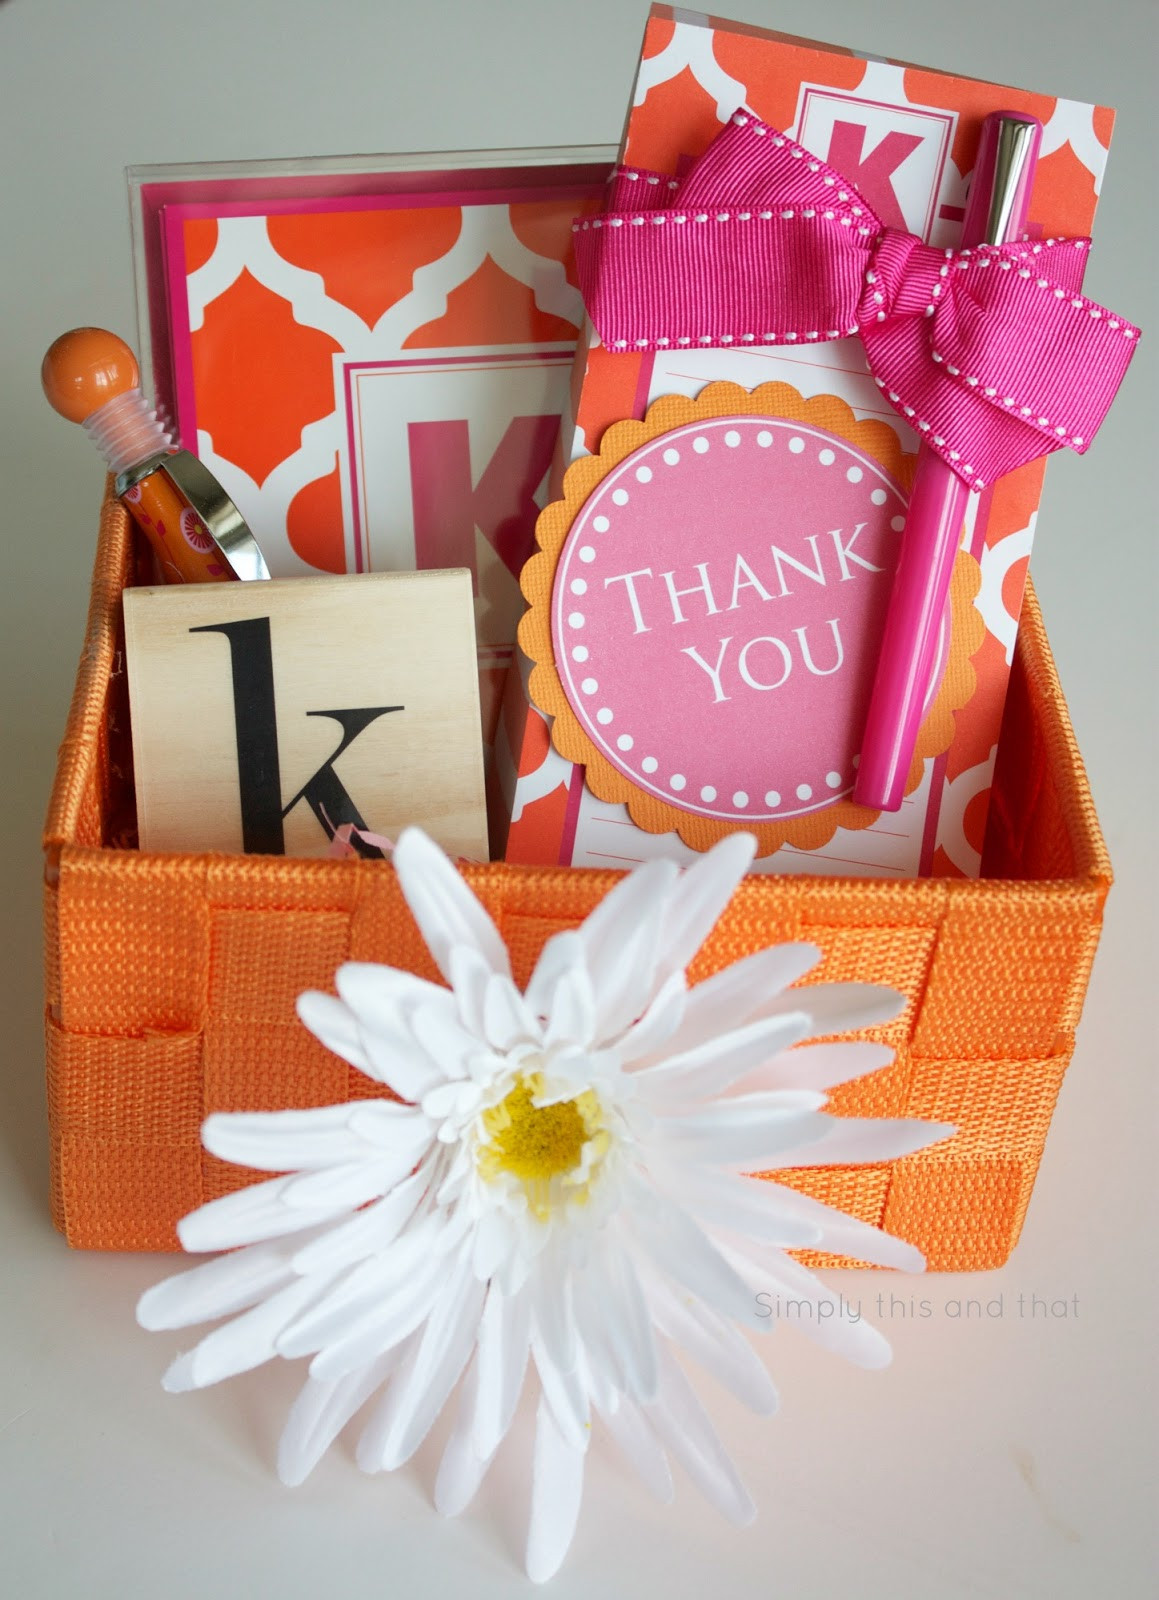 Thank You Gift Baskets Ideas  Simply This and that Thank You Basket Printable Tag